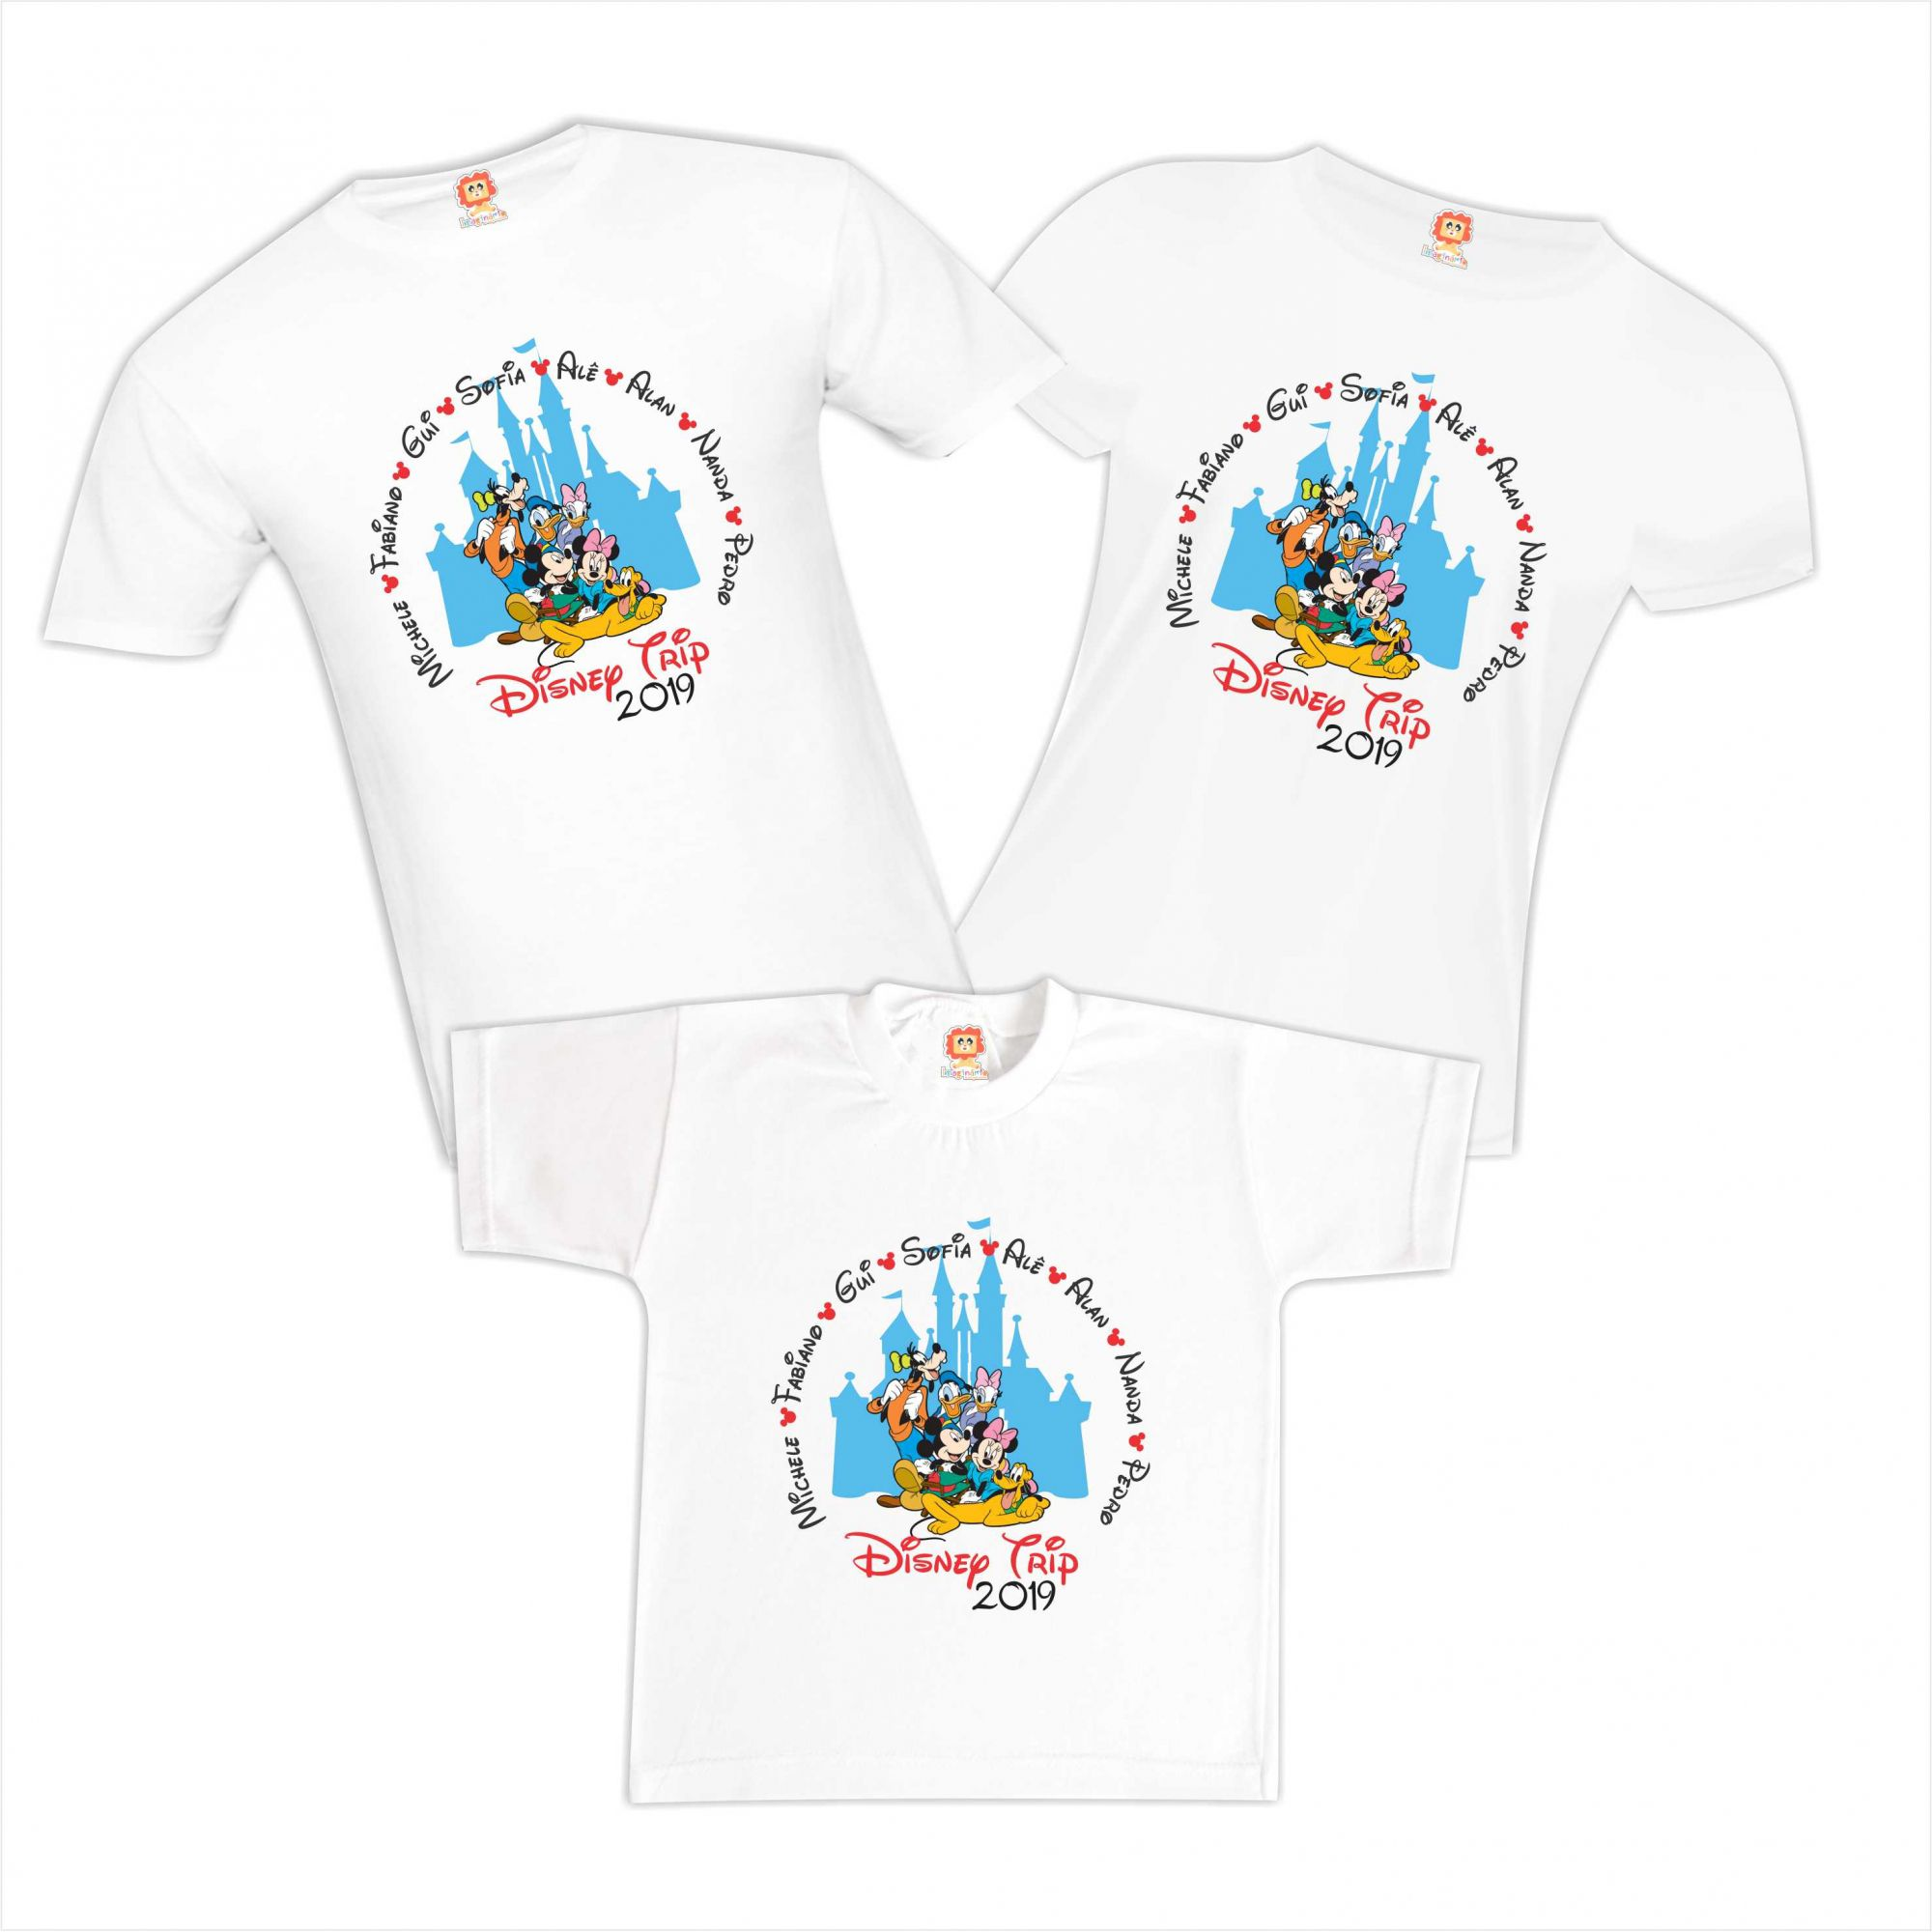 Camisetas Personalizadas Disney Turma do Mickey e Minnie Disney Orlando